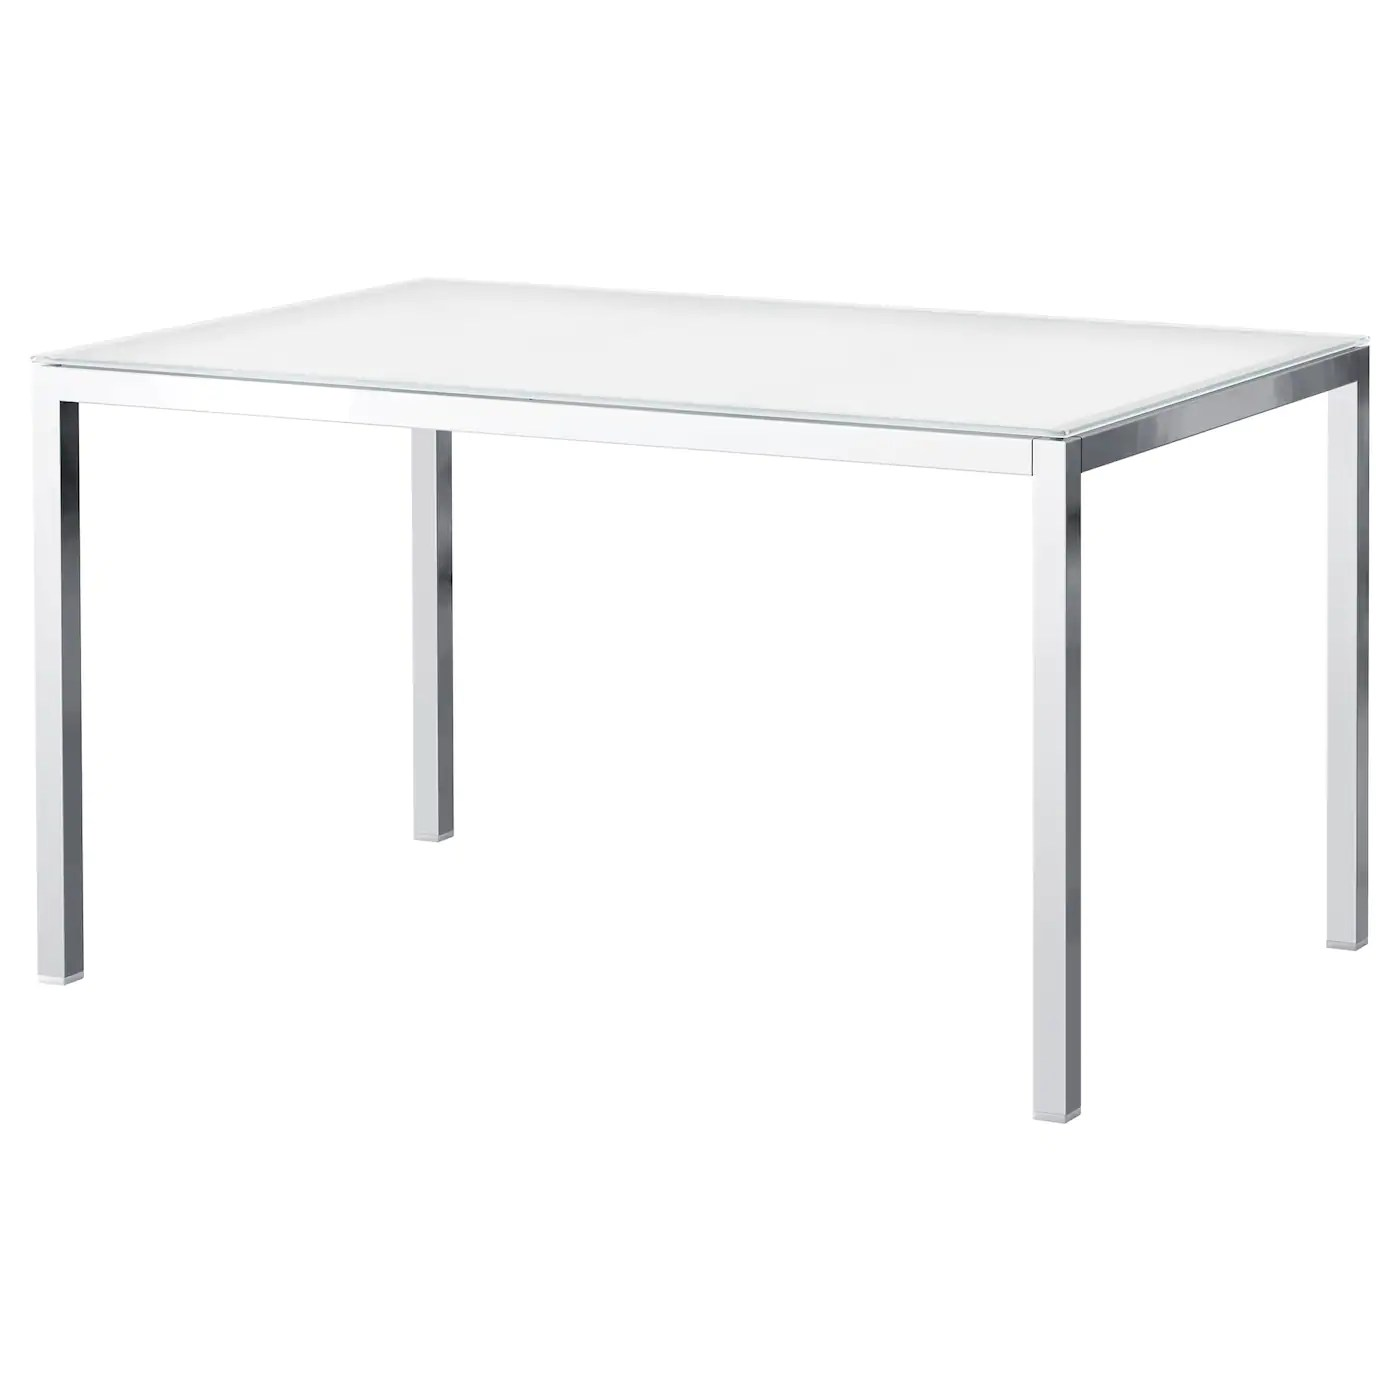 Table Ikea En Verre Torsby Table Chrome Plated Glass White